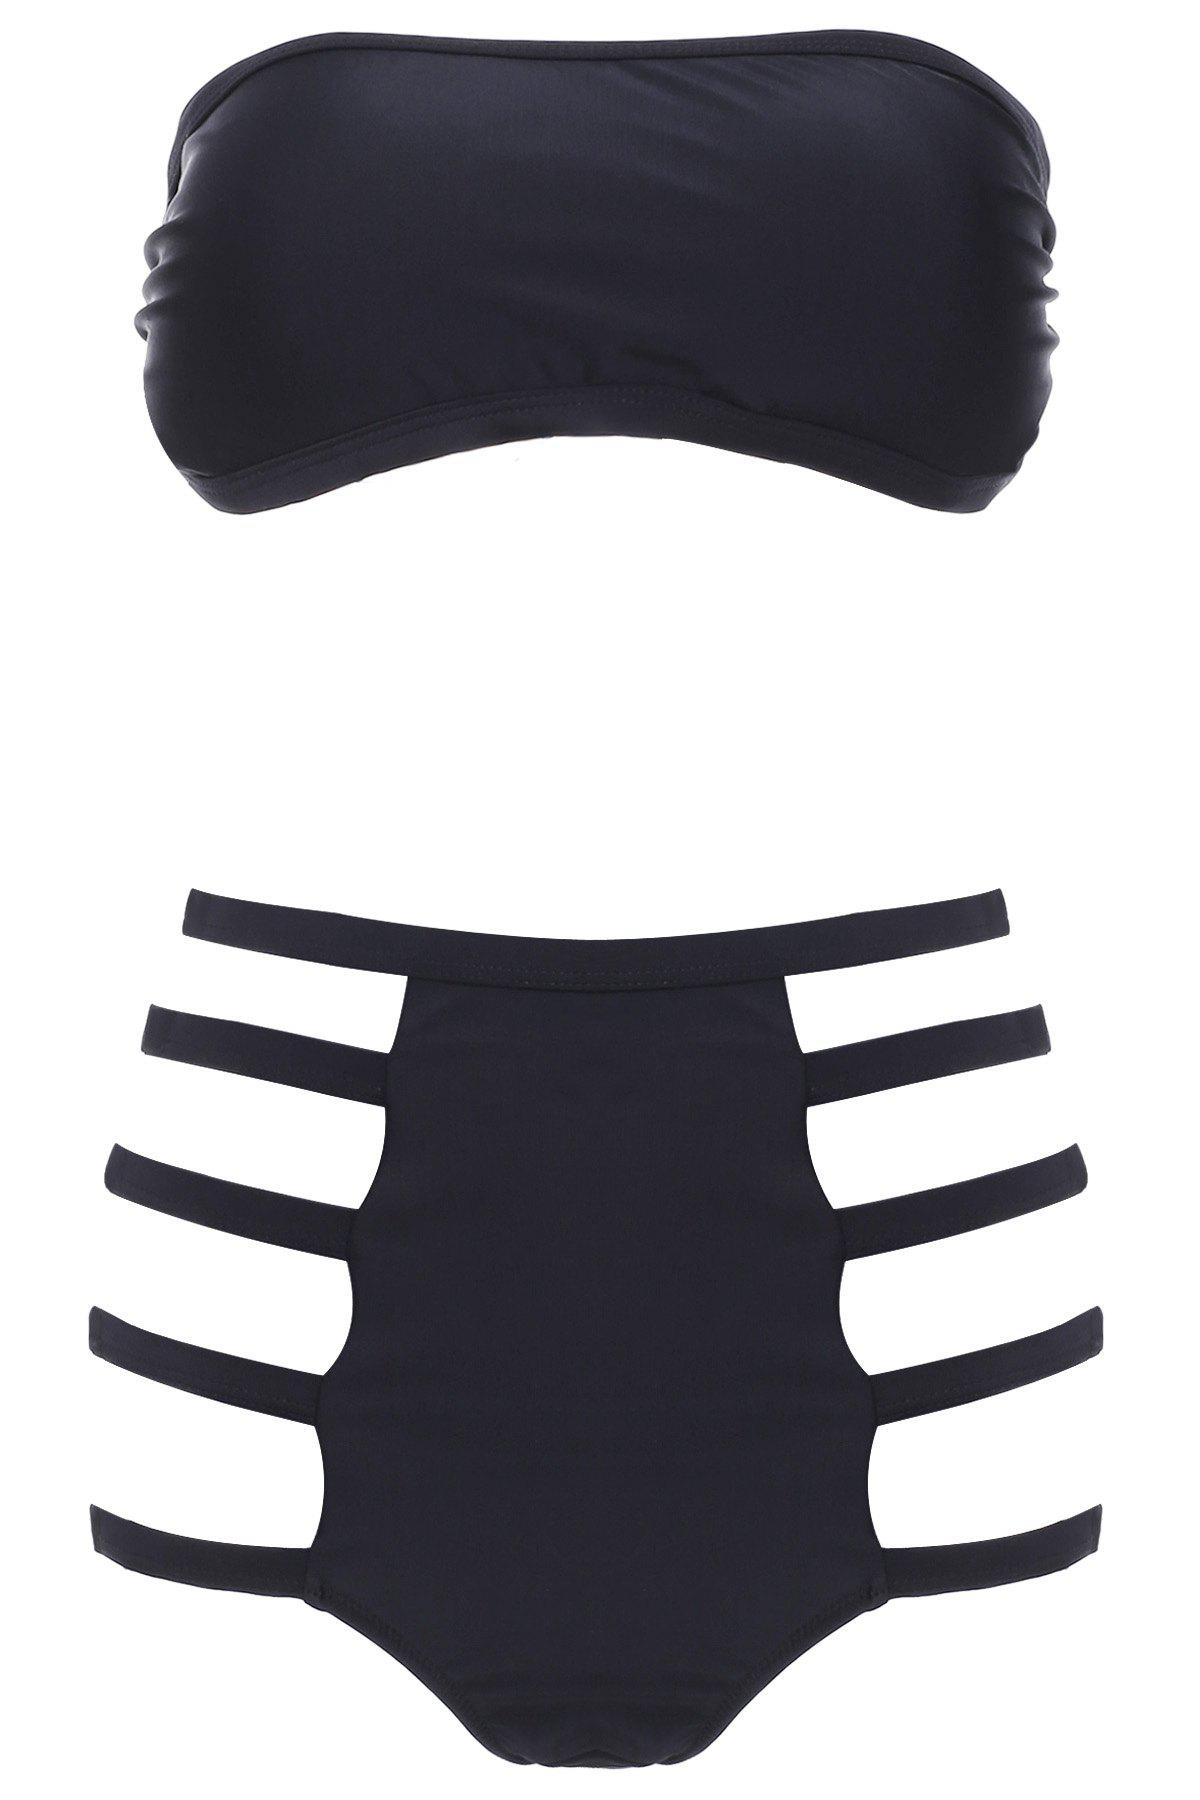 Sexy Strapless High-Waisted Cut Out Solid Color Women's Bikini Set